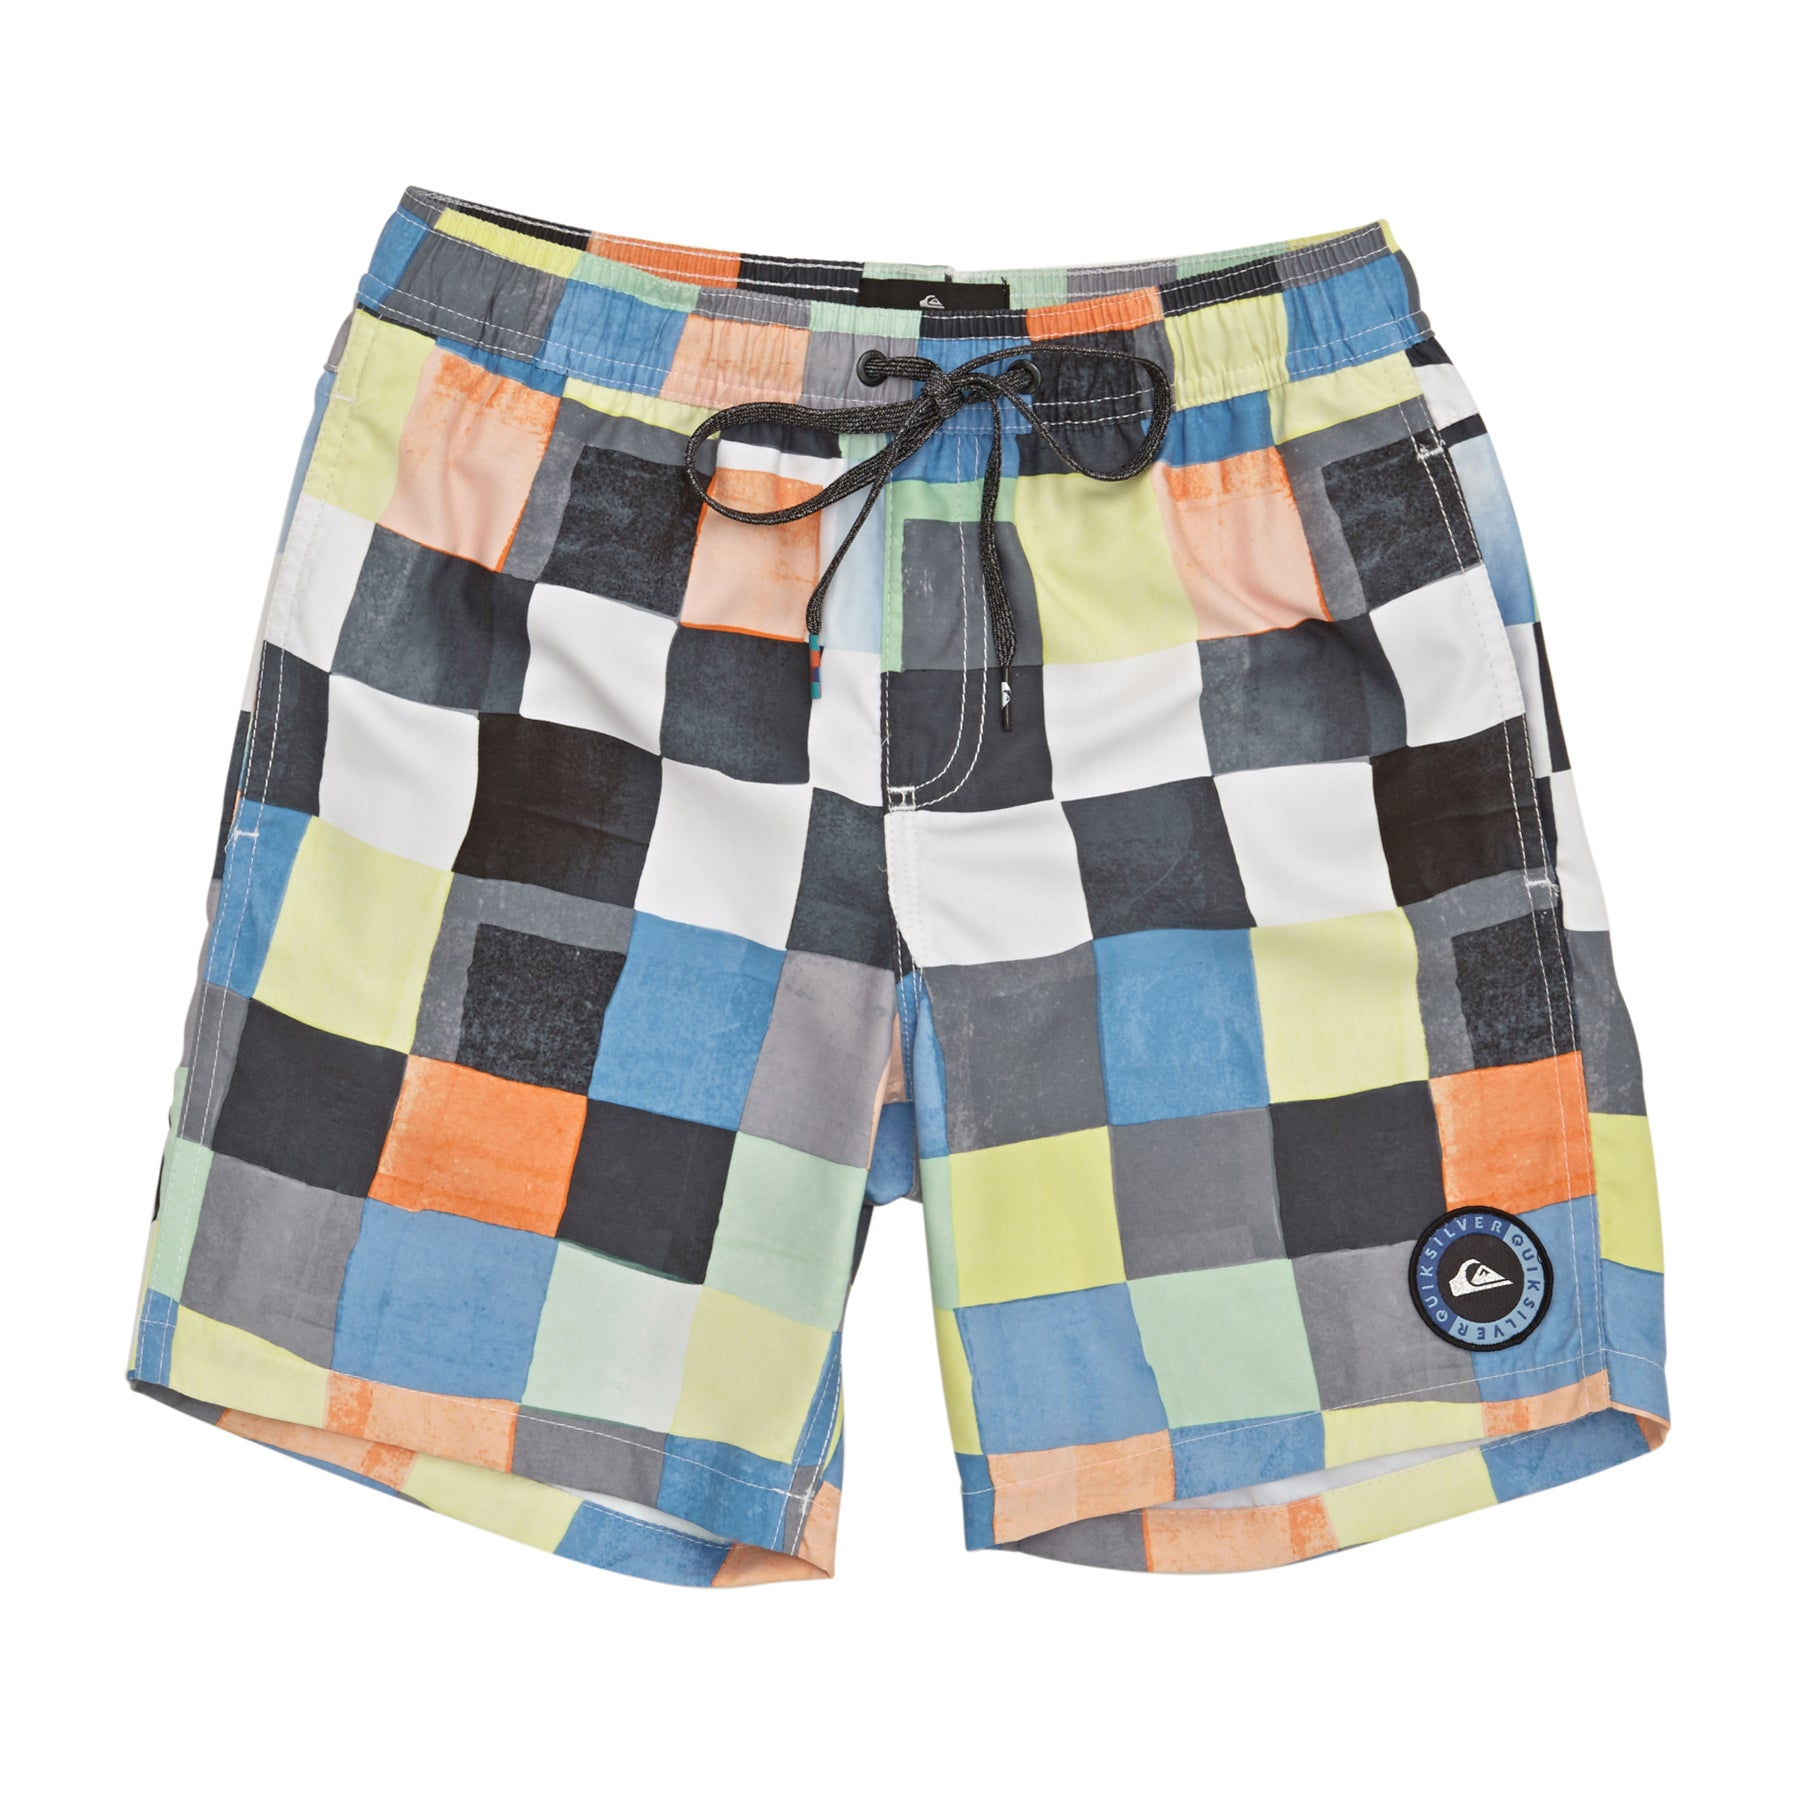 Quiksilver Resin Check 15 Boys Boardshorts - White